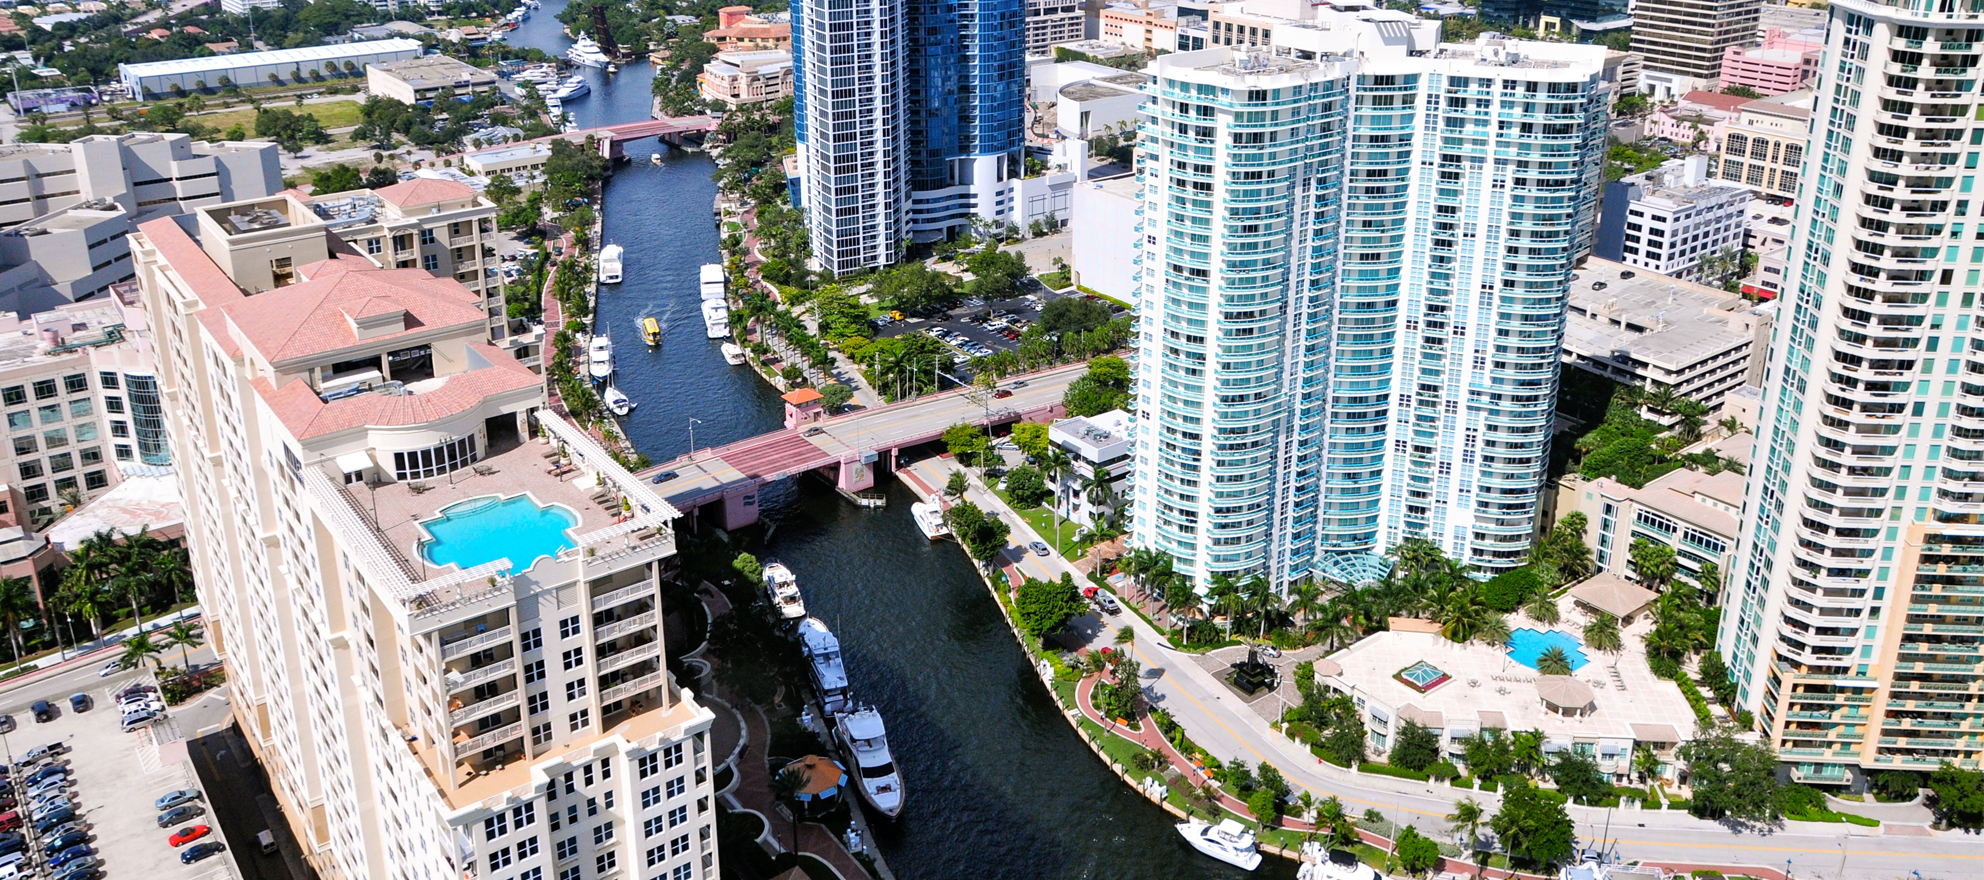 Chicago-based investor acquires Fort Lauderdale community